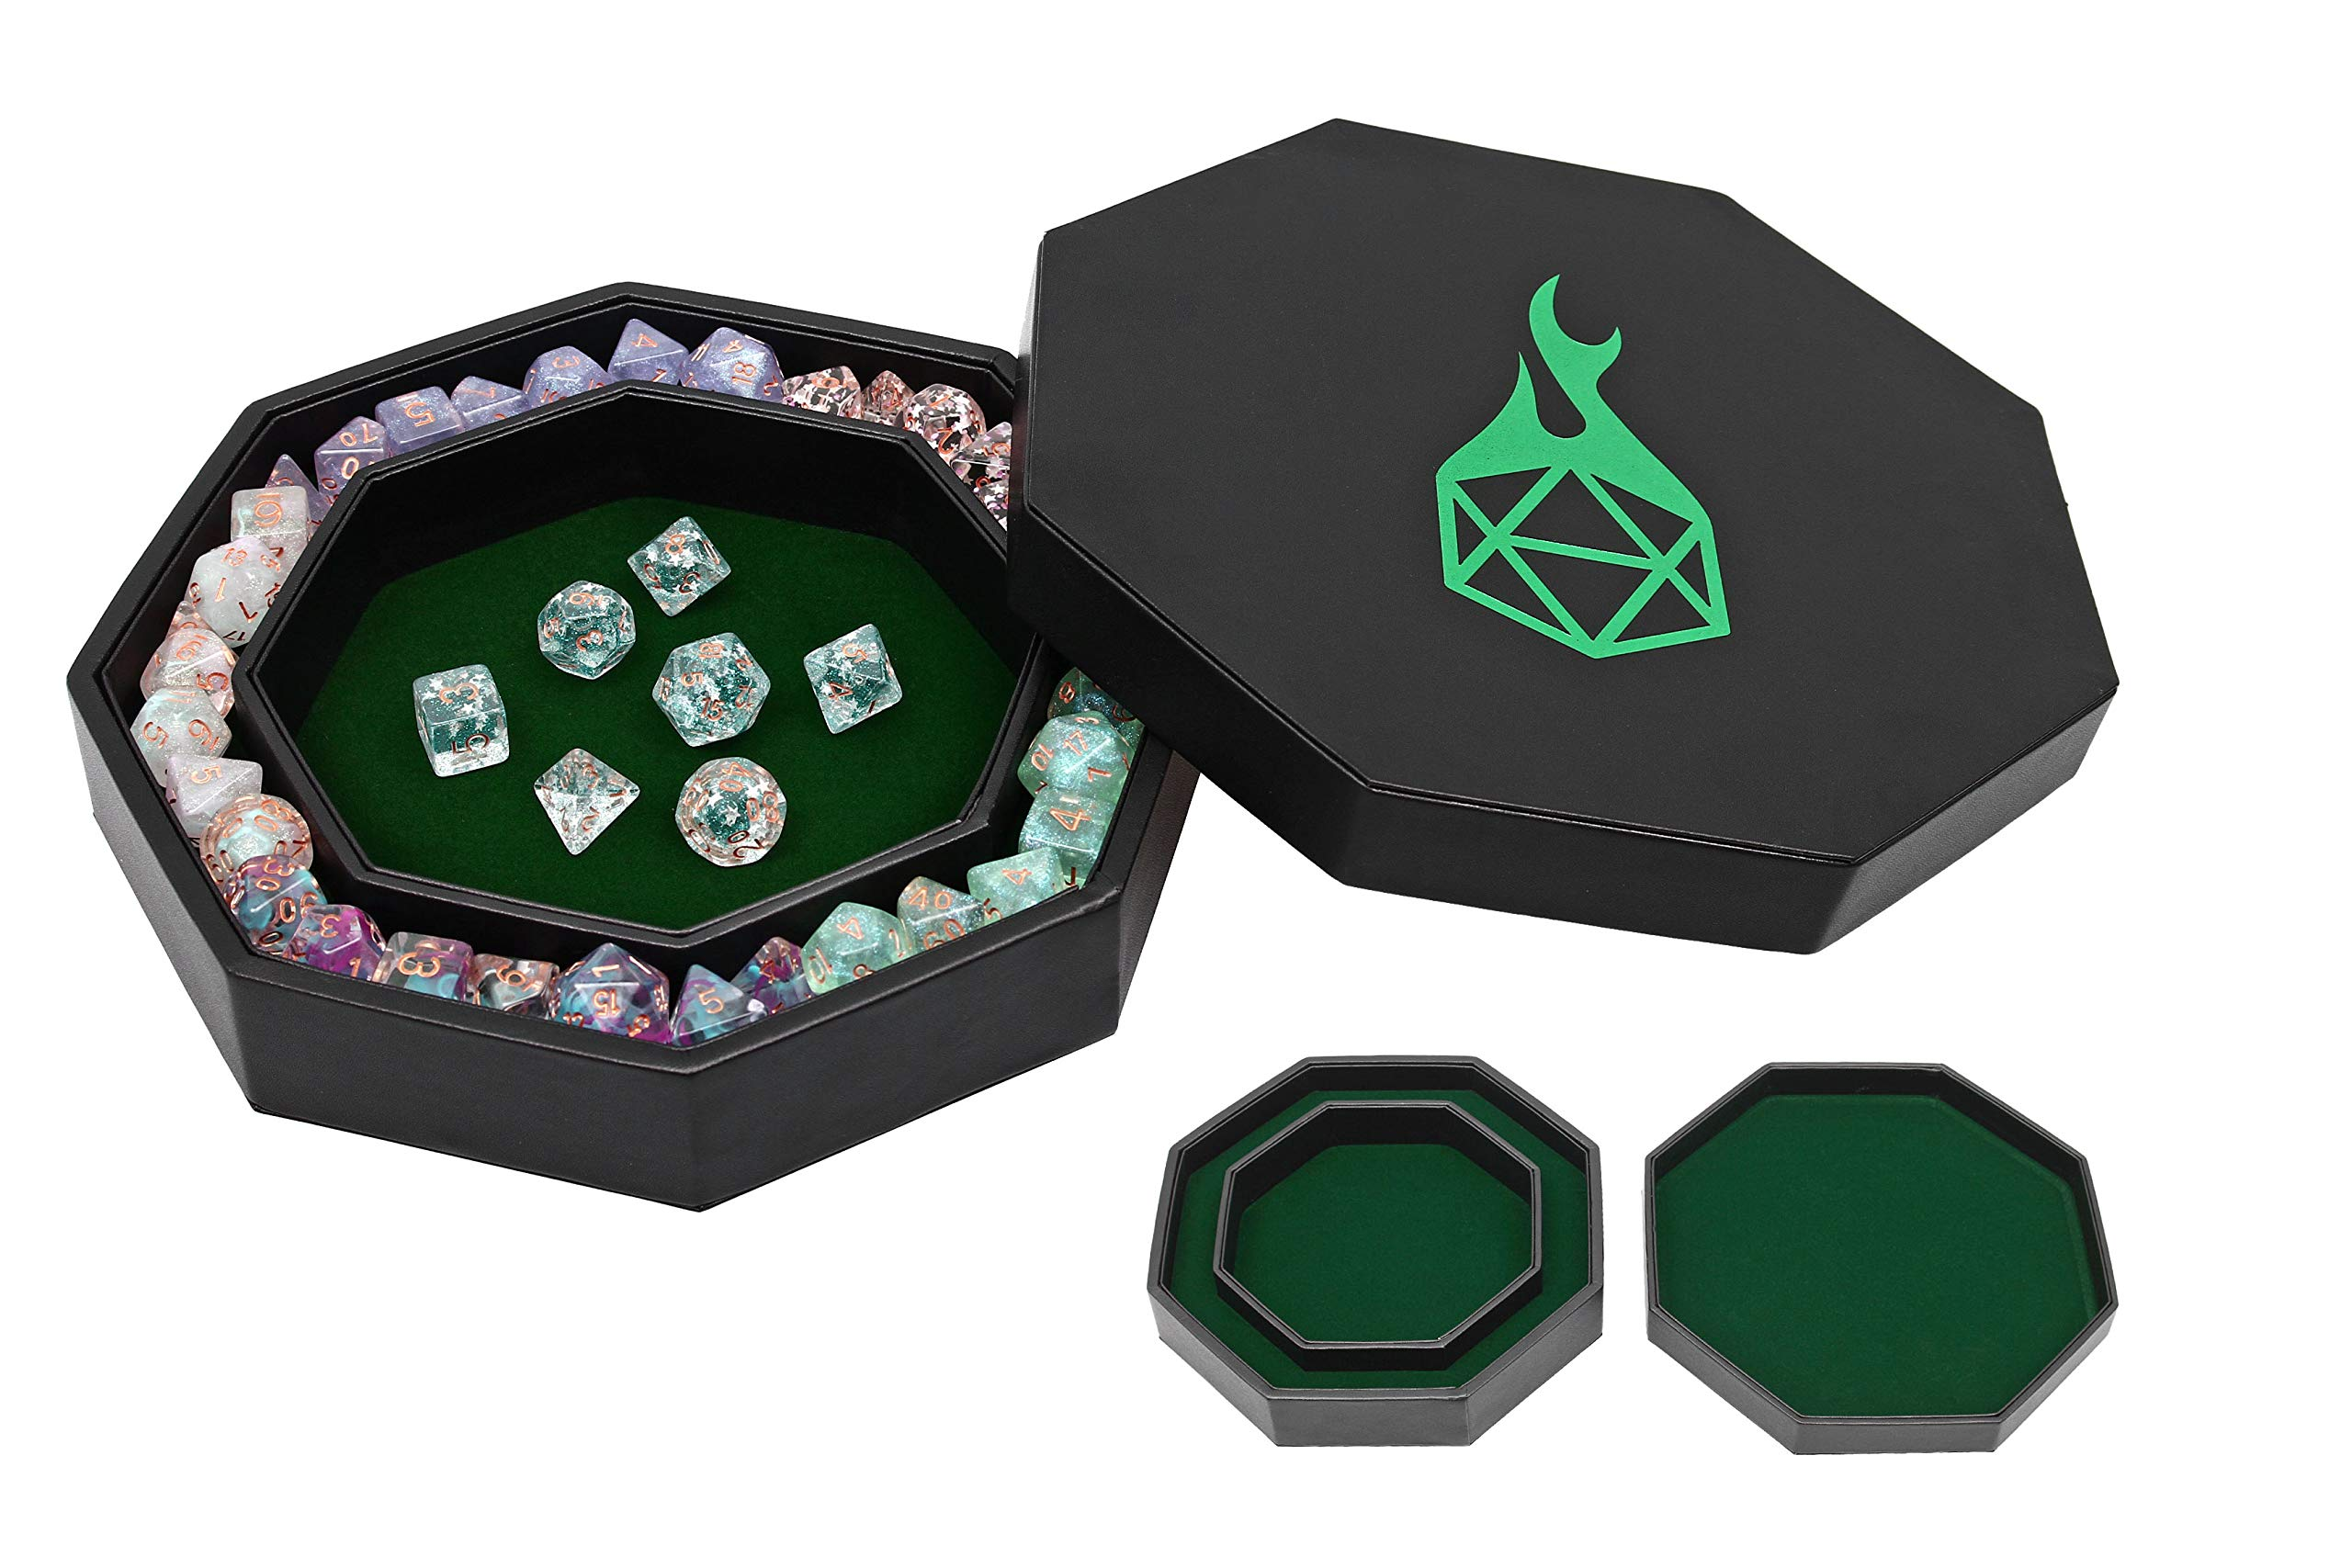 Forged Dice Co. Dice Tray Arena Rolling Tray and Storage Compatible with Any dice Game, D&D and RPG Gaming (Green) by Forged Dice Co.